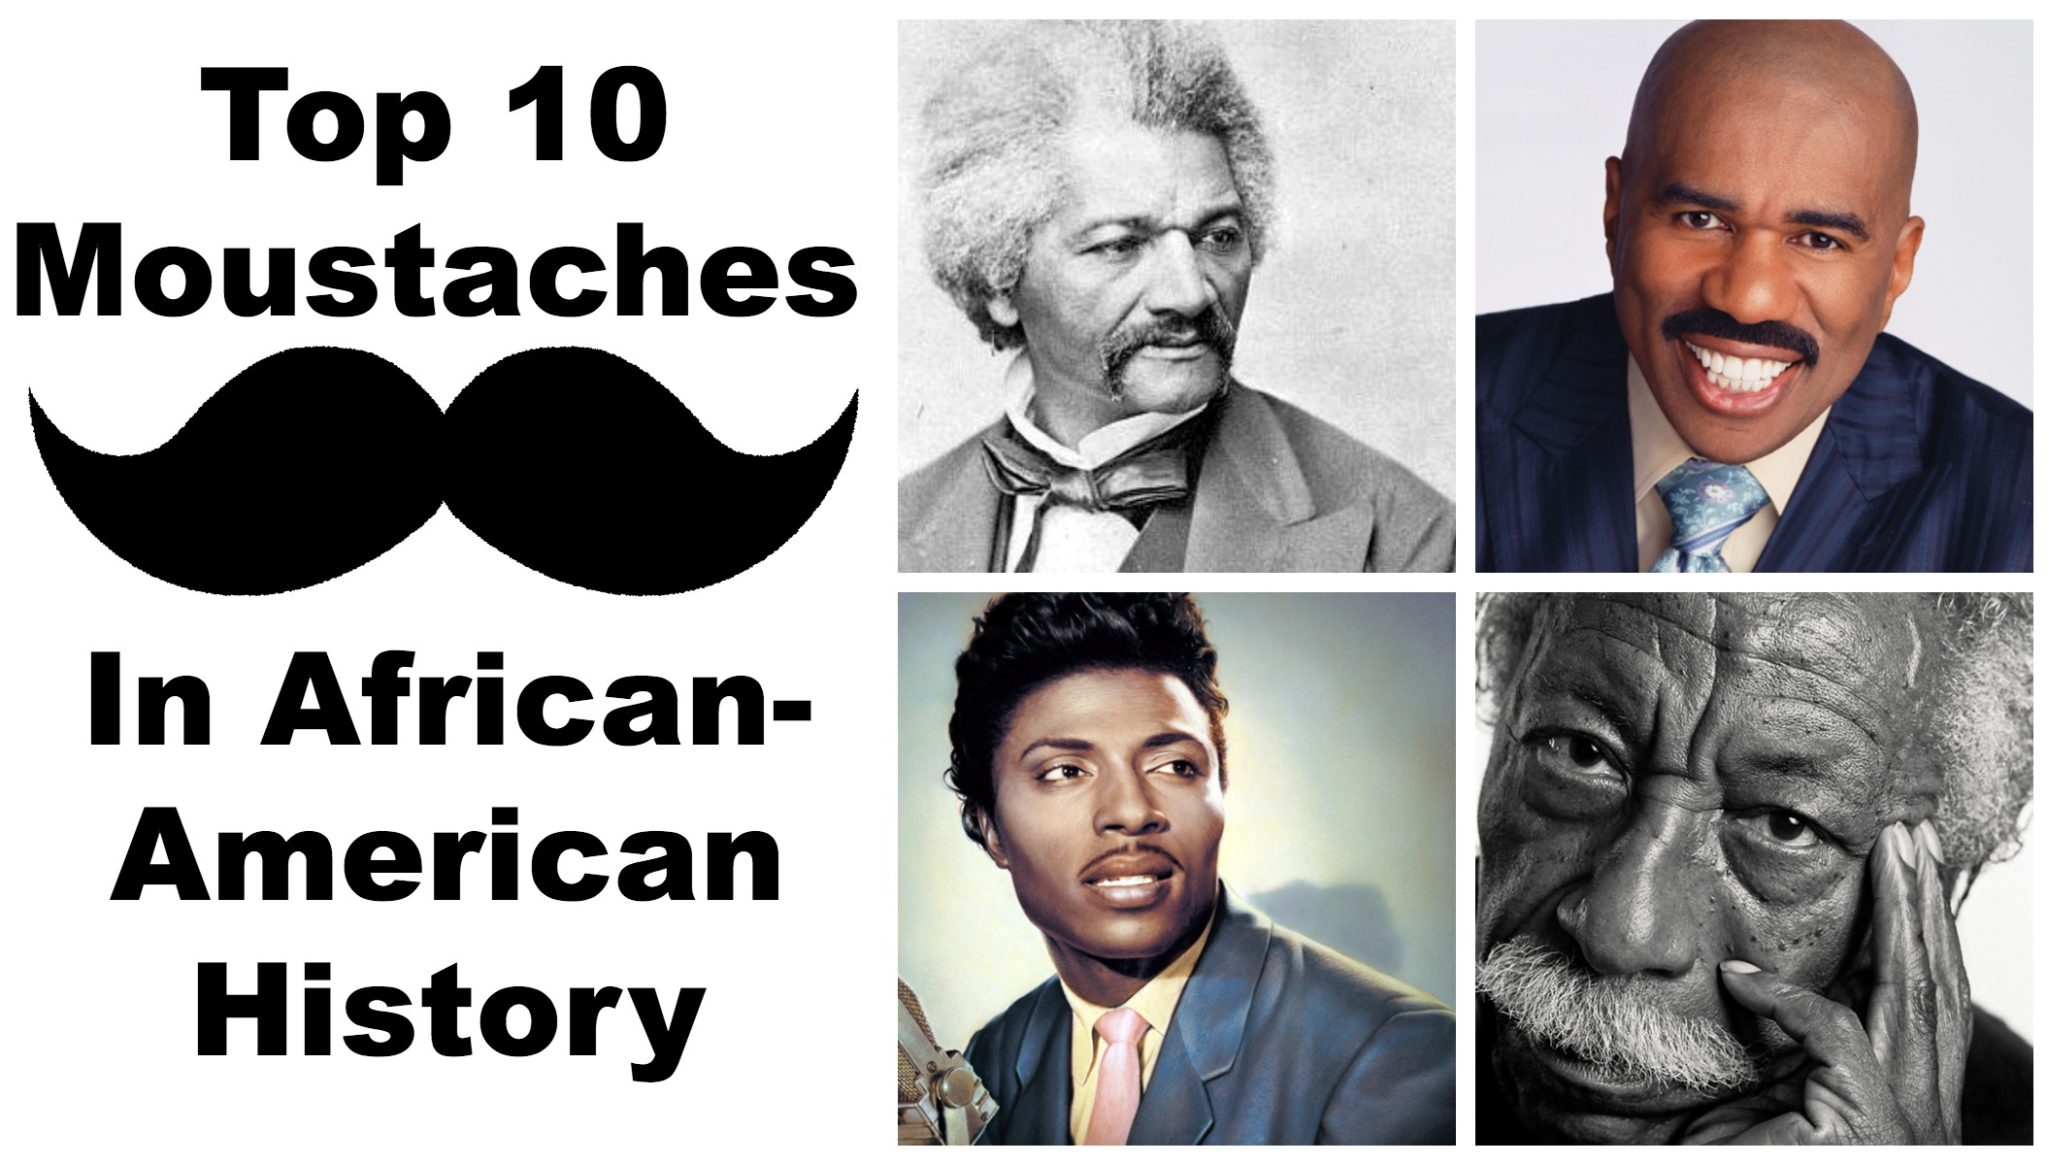 Top 10 Moustaches in African American History